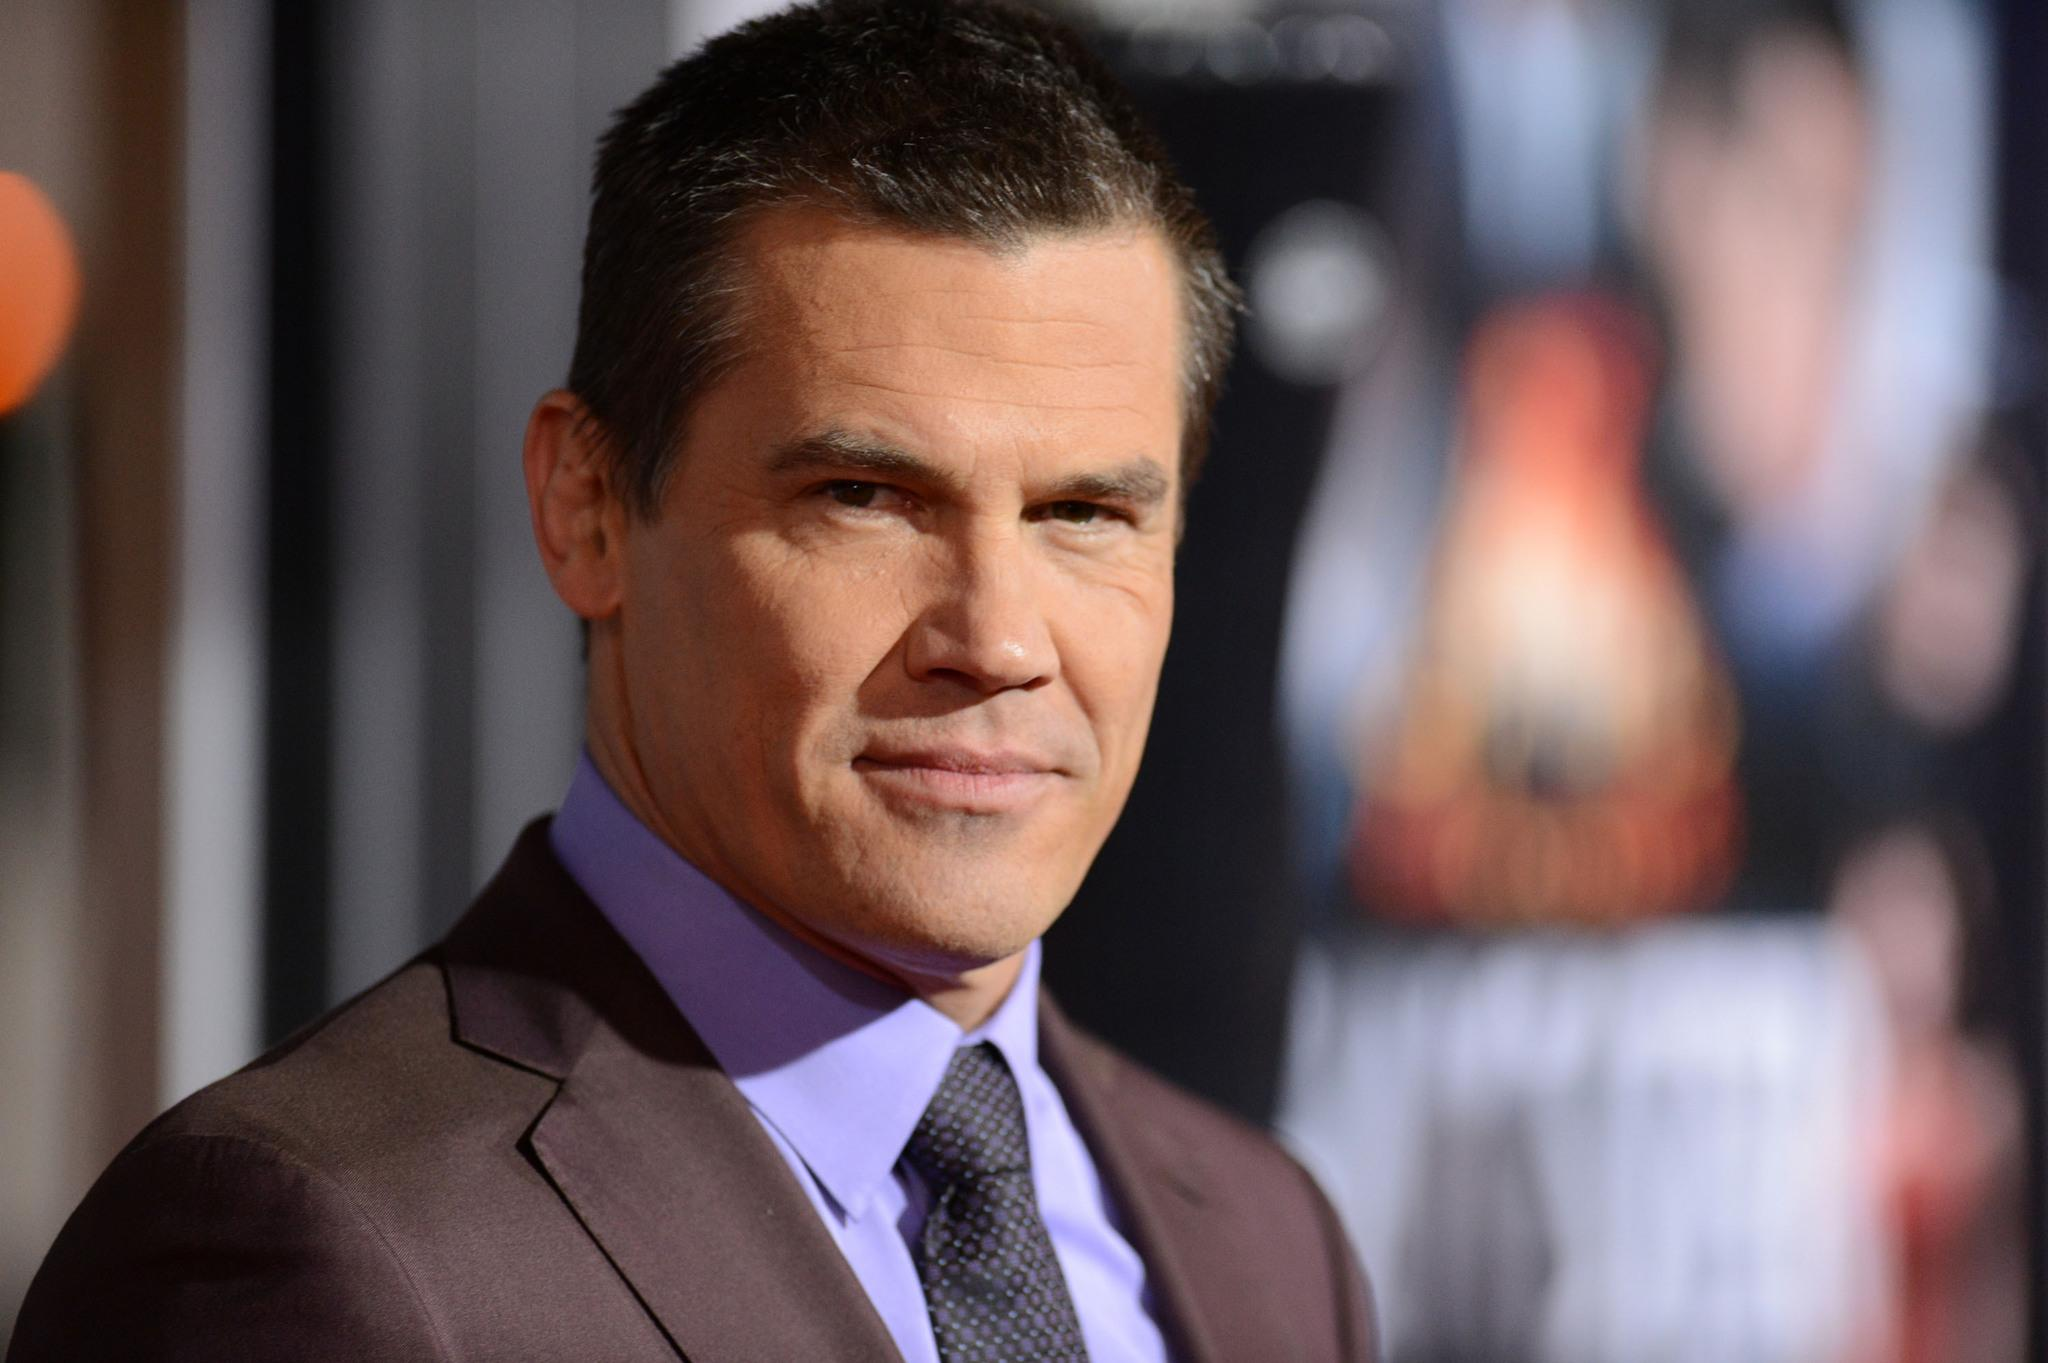 josh brolin instagramjosh brolin instagram, josh brolin batman, josh brolin movies, josh brolin w, josh brolin wife, josh brolin megan fox, josh brolin kathryn boyd, josh brolin wiki, josh brolin car, josh brolin imdb, josh brolin natal chart, josh brolin house, josh brolin bond, josh brolin wikipedia, josh brolin 1990, josh brolin height and weight, josh brolin 2007, josh brolin and diane lane, josh brolin films, josh brolin parents